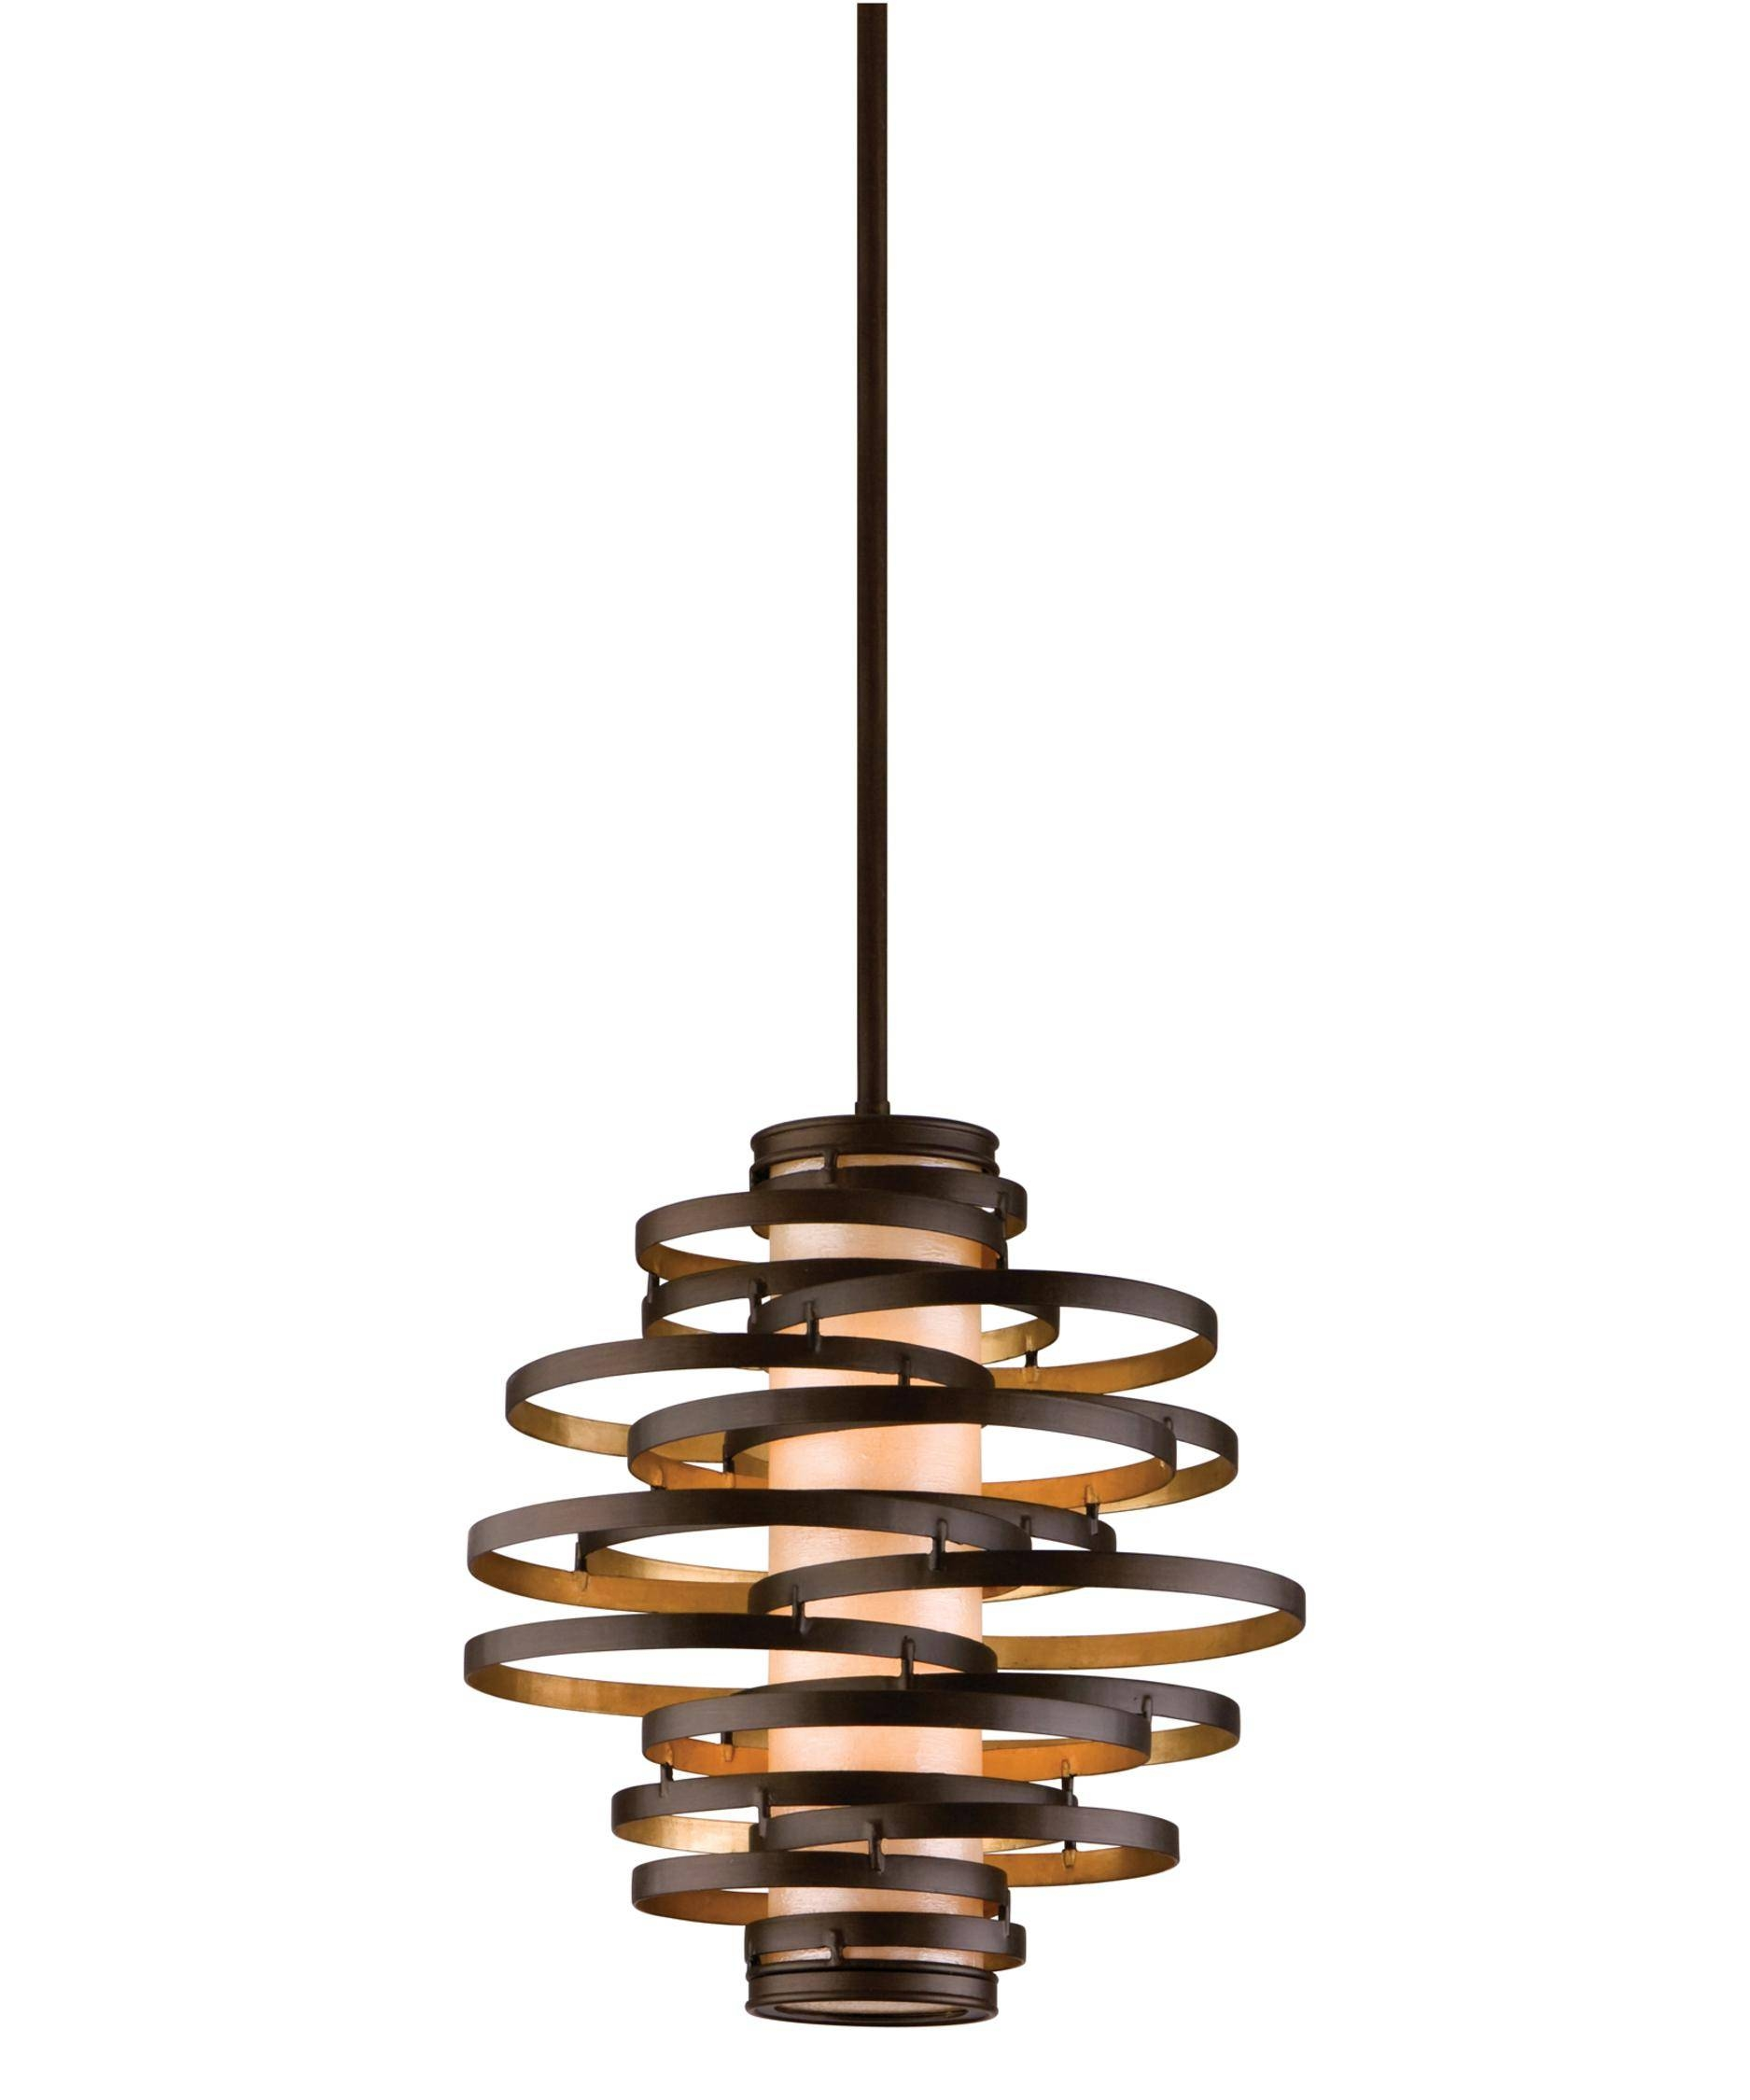 Corbett Lighting Ve-42 Vertigo 18 Inch Wide 2 Light Large Pendant for Corbett Vertigo Small Pendant Lights (Image 12 of 15)